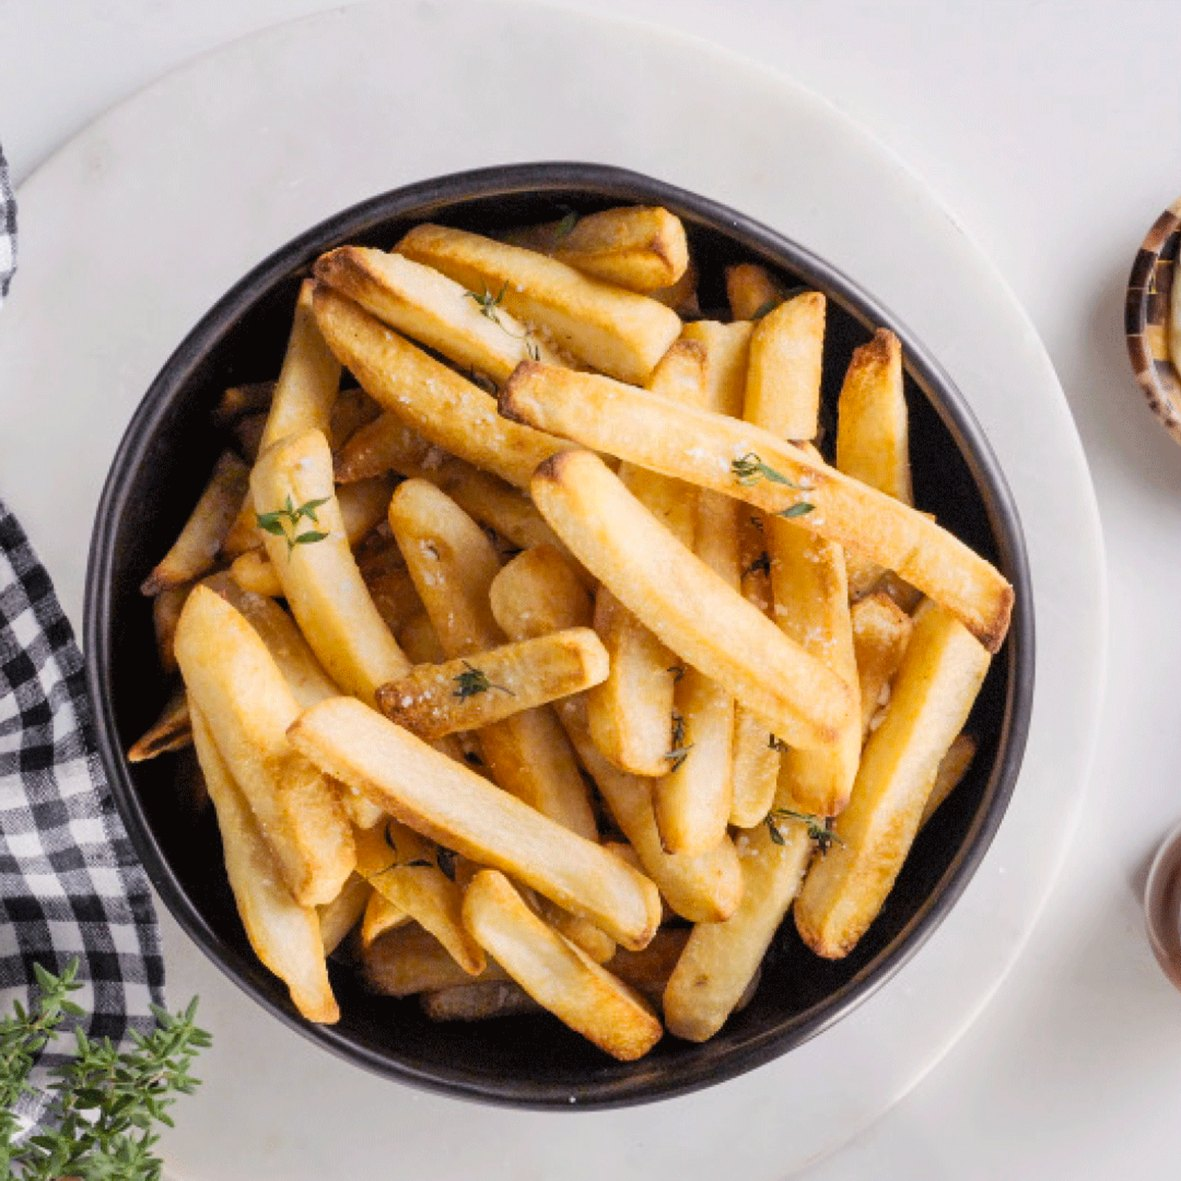 fries made in Breville Combi Wave